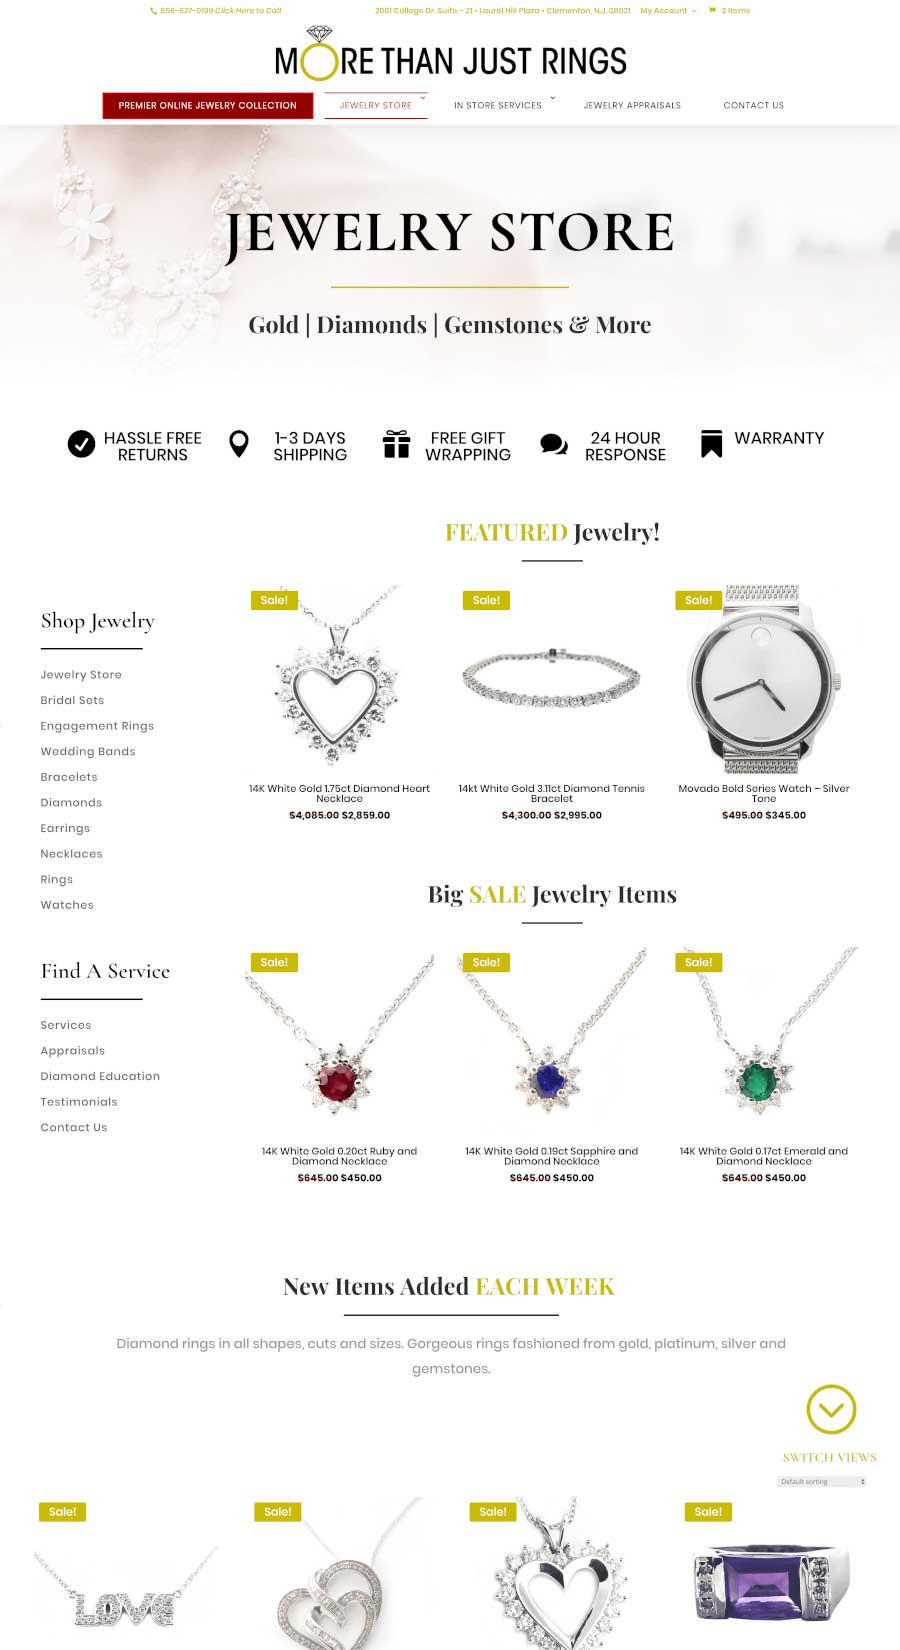 More Than Just Rings Jewelry Store Page